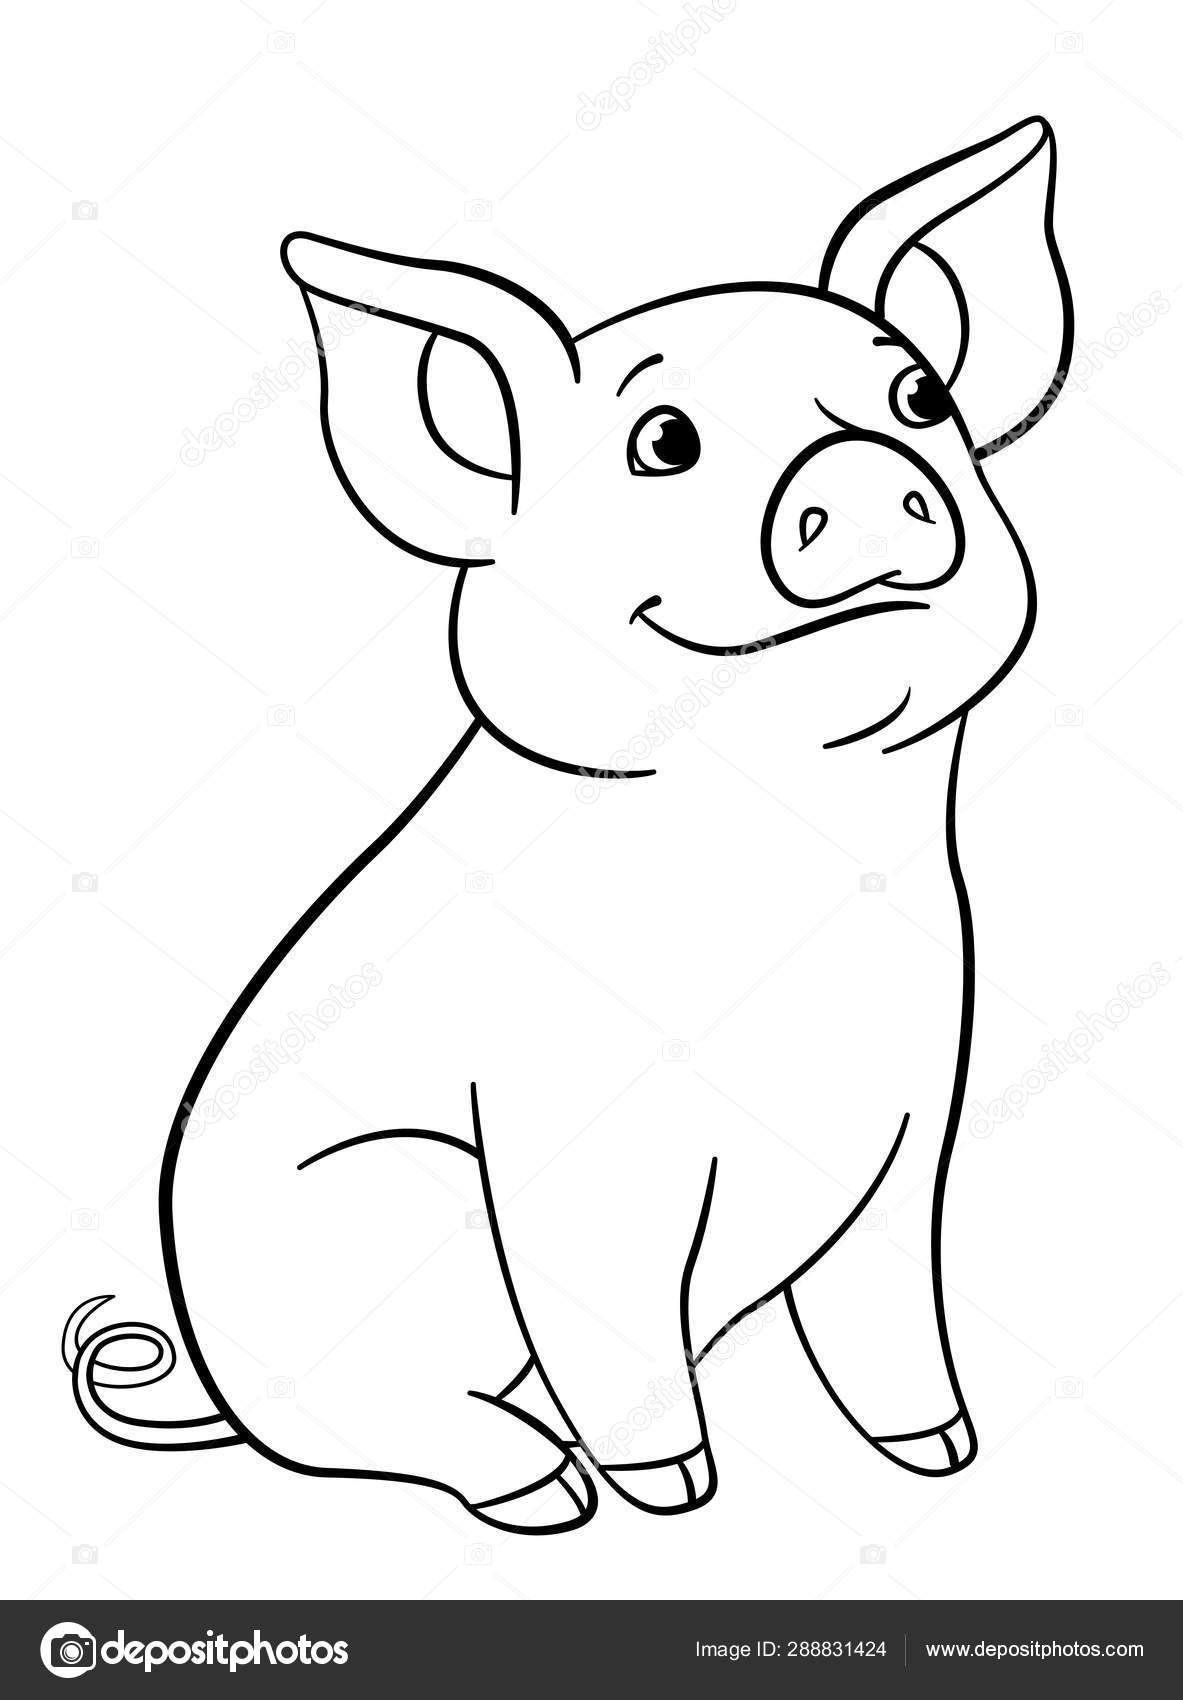 Pig Mother and Baby Pigs coloring page | Free Printable Coloring Pages | 1700x1183